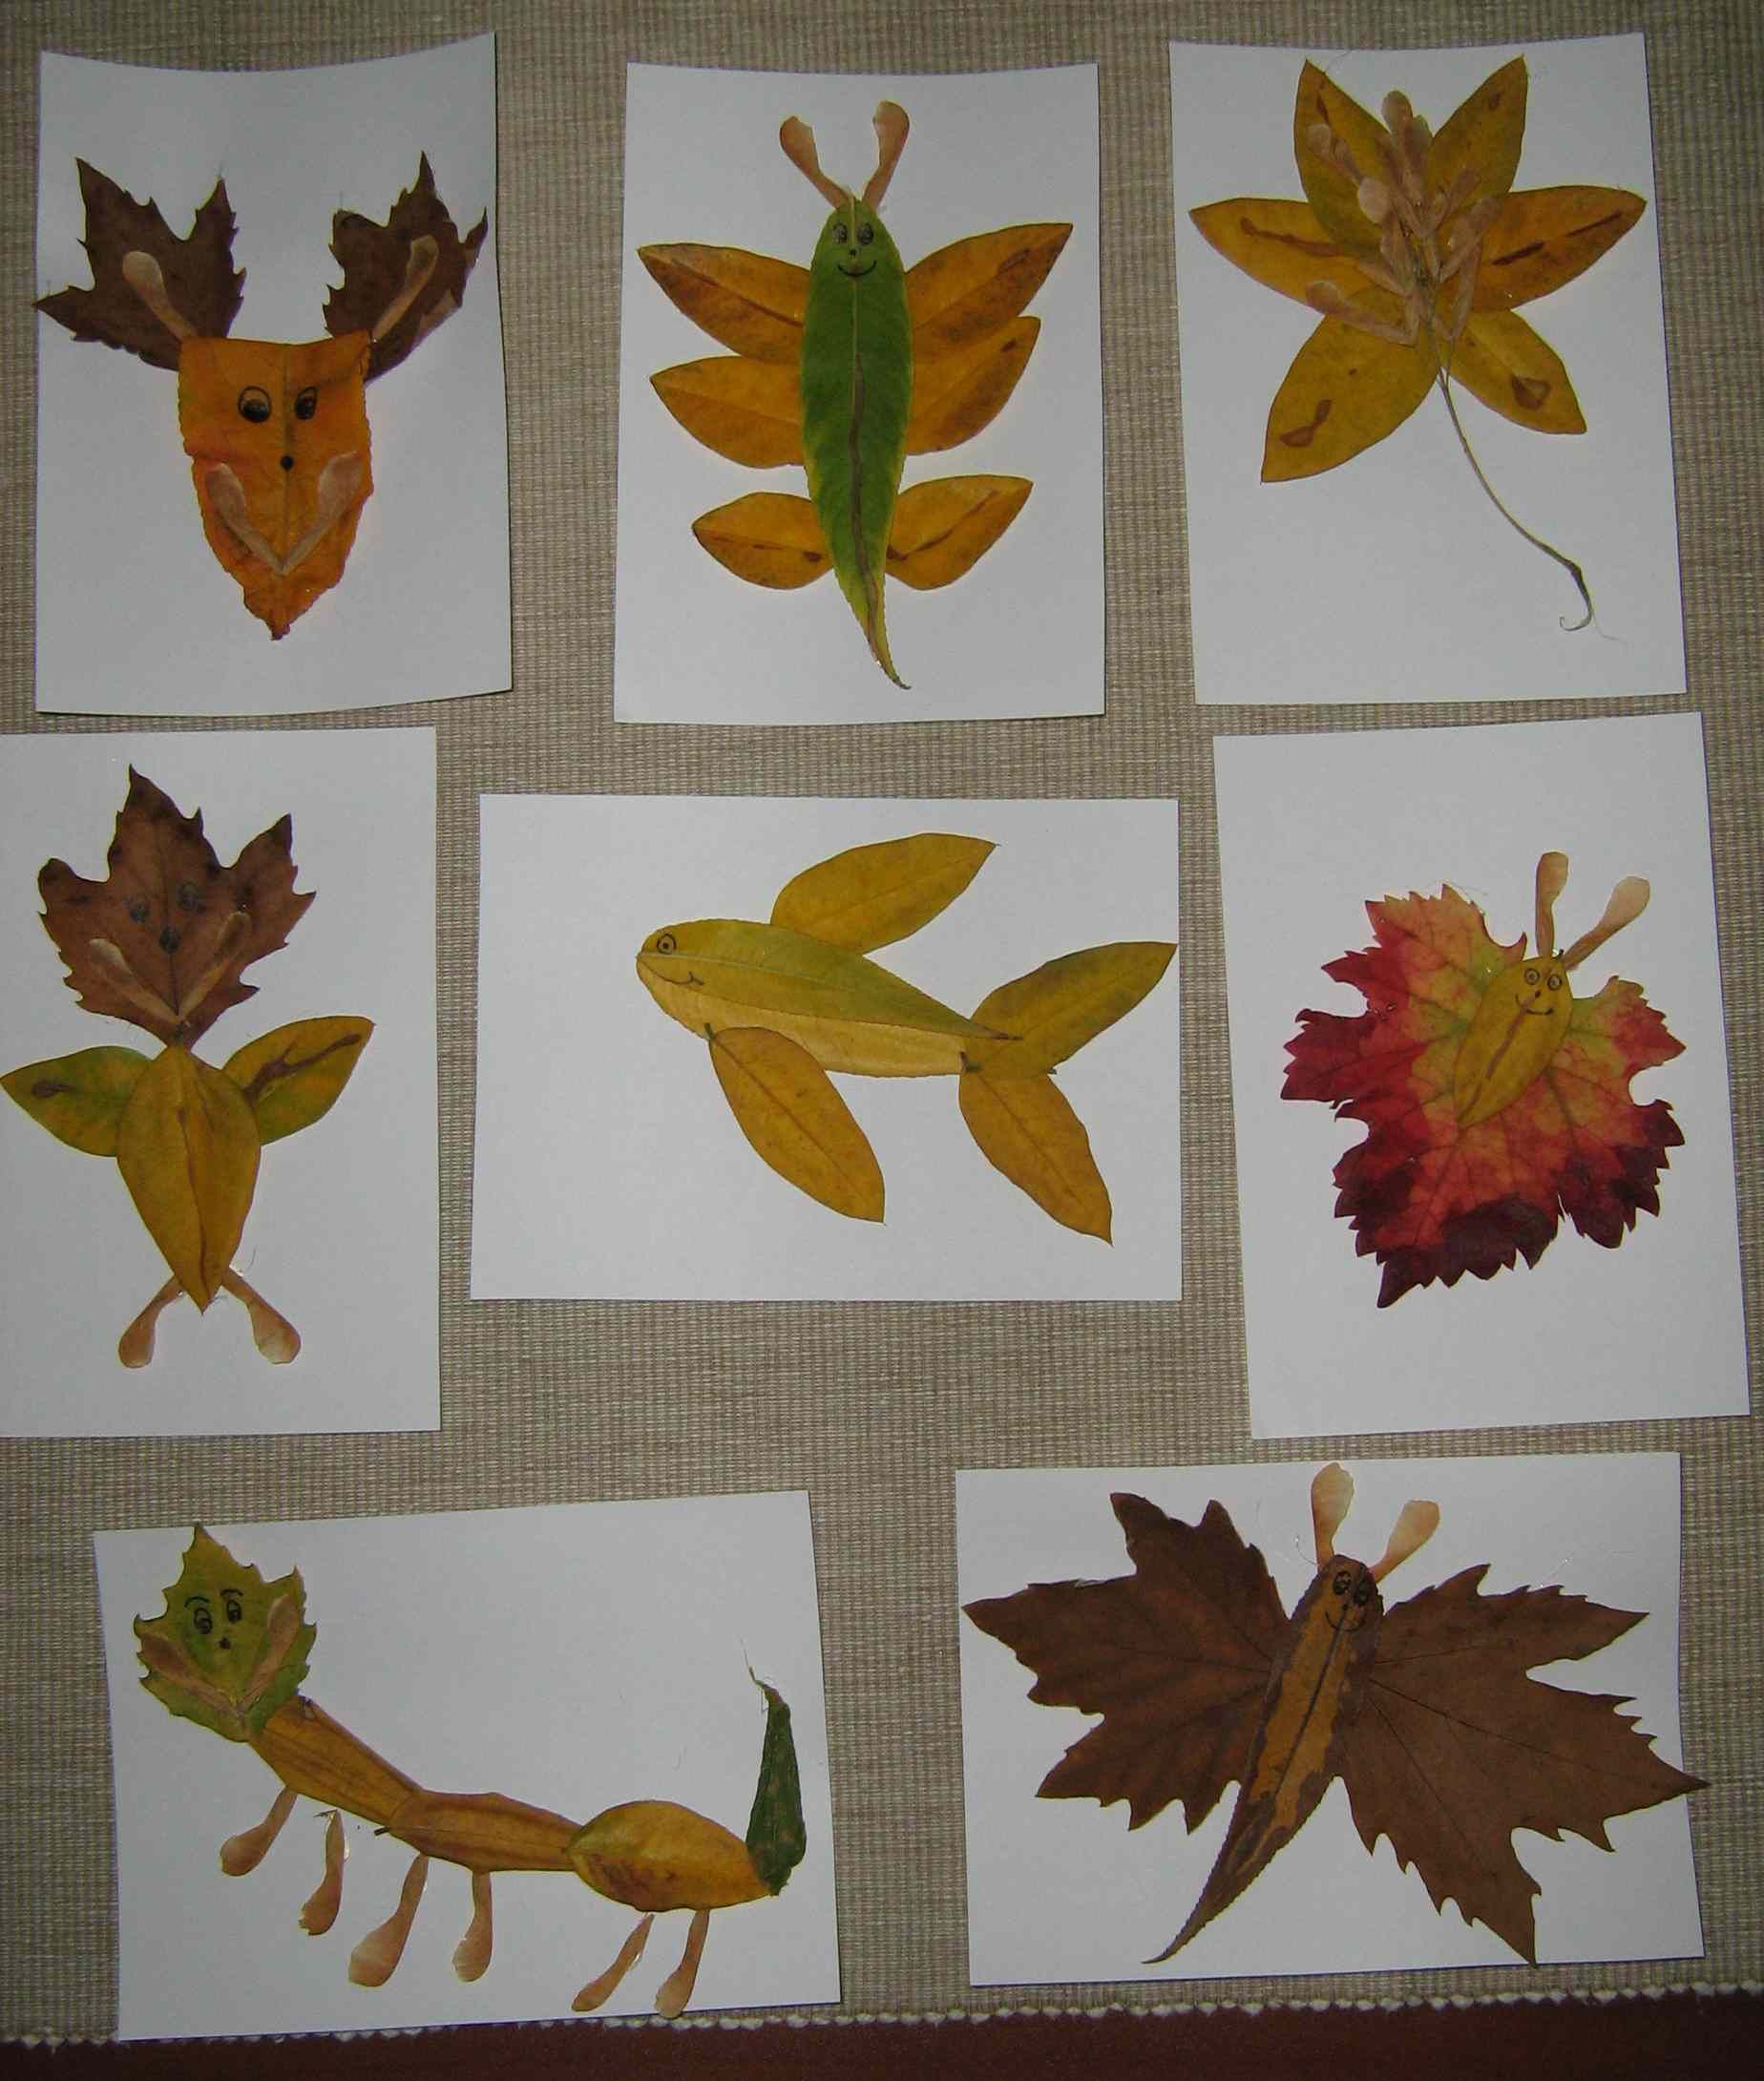 Making Pictures With Leaves Craft Re Pinned By Thriving Kids Therapy